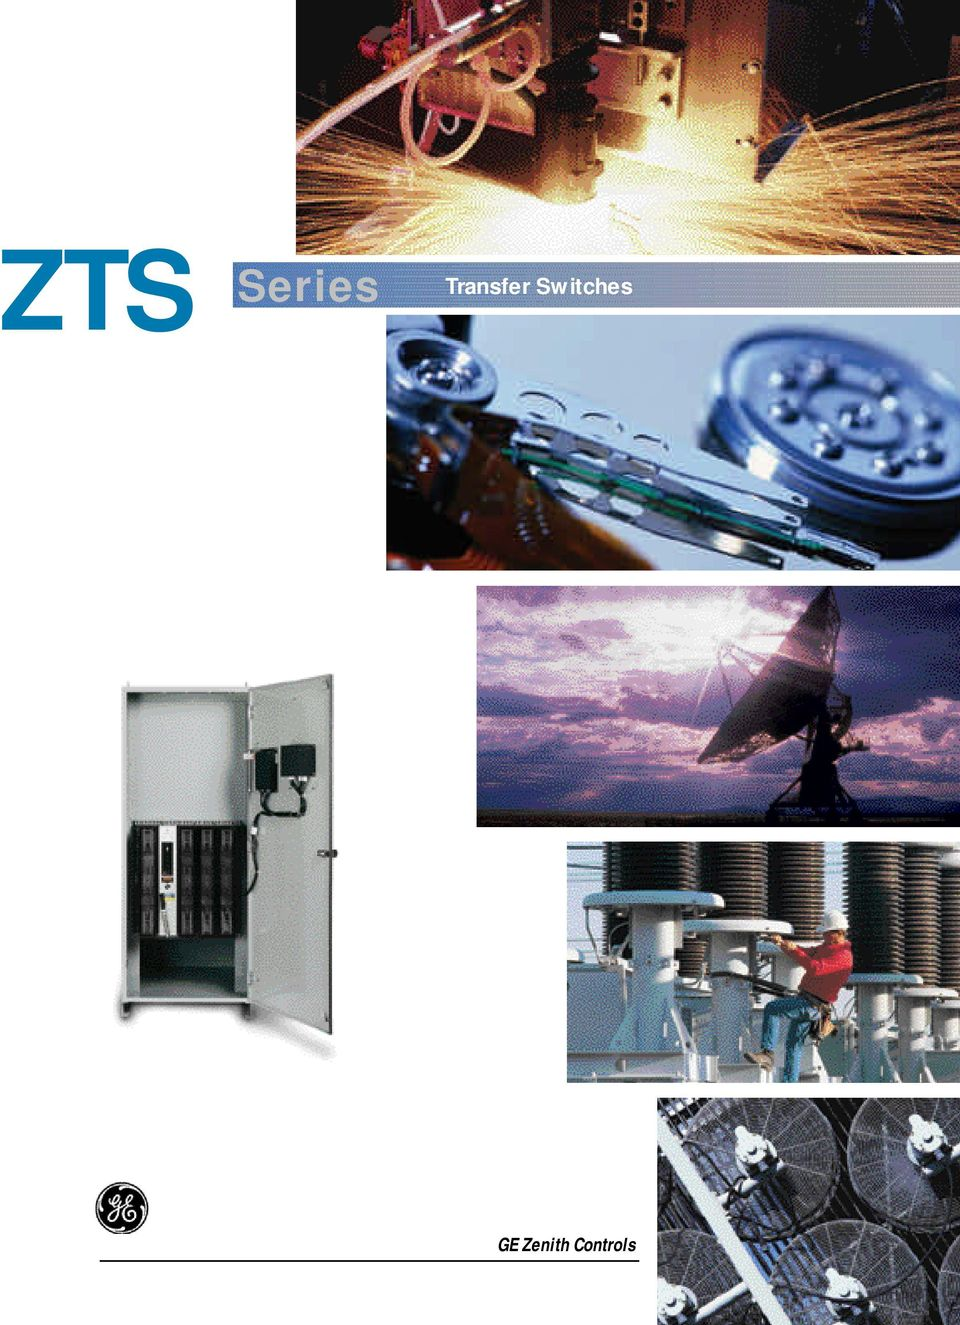 hight resolution of 2 zts series power ontrol equipment quality assurance from start to shipment since 92 ge zenith has designed products with customer satisfaction in mind